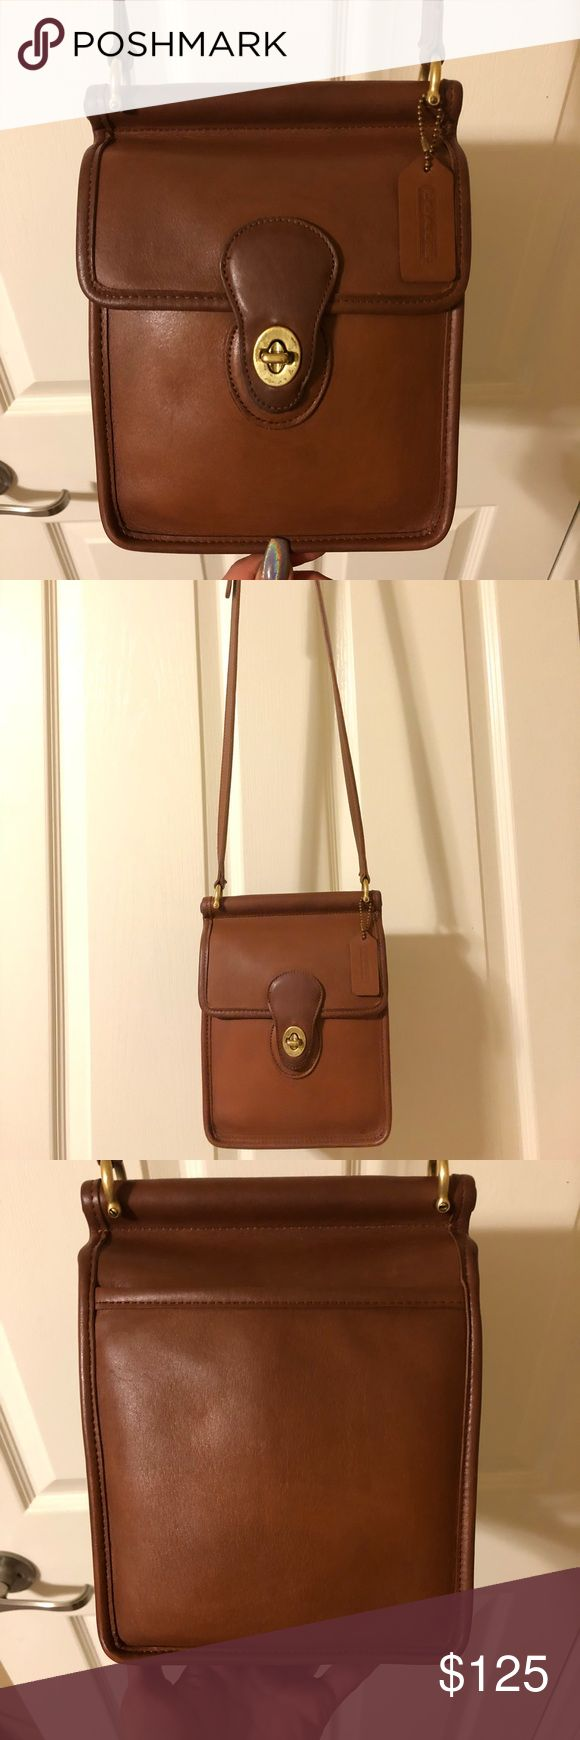 Vintage Coach Willis Murphy Bag 9930 #L4C-9930. Made in the United States in 1994. British tan leather with brass hardware. 7w x 8h x 3d. 44 inch adjustable strap. Cleaned and conditioned thoroughly using Leather Therapy and Skidmore's, no dyes/paint that can crack over time. Ready for another 20 years of use. All my bags are near pristine unless otherwise stated or shown in pix Coach Bags Crossbody Bags